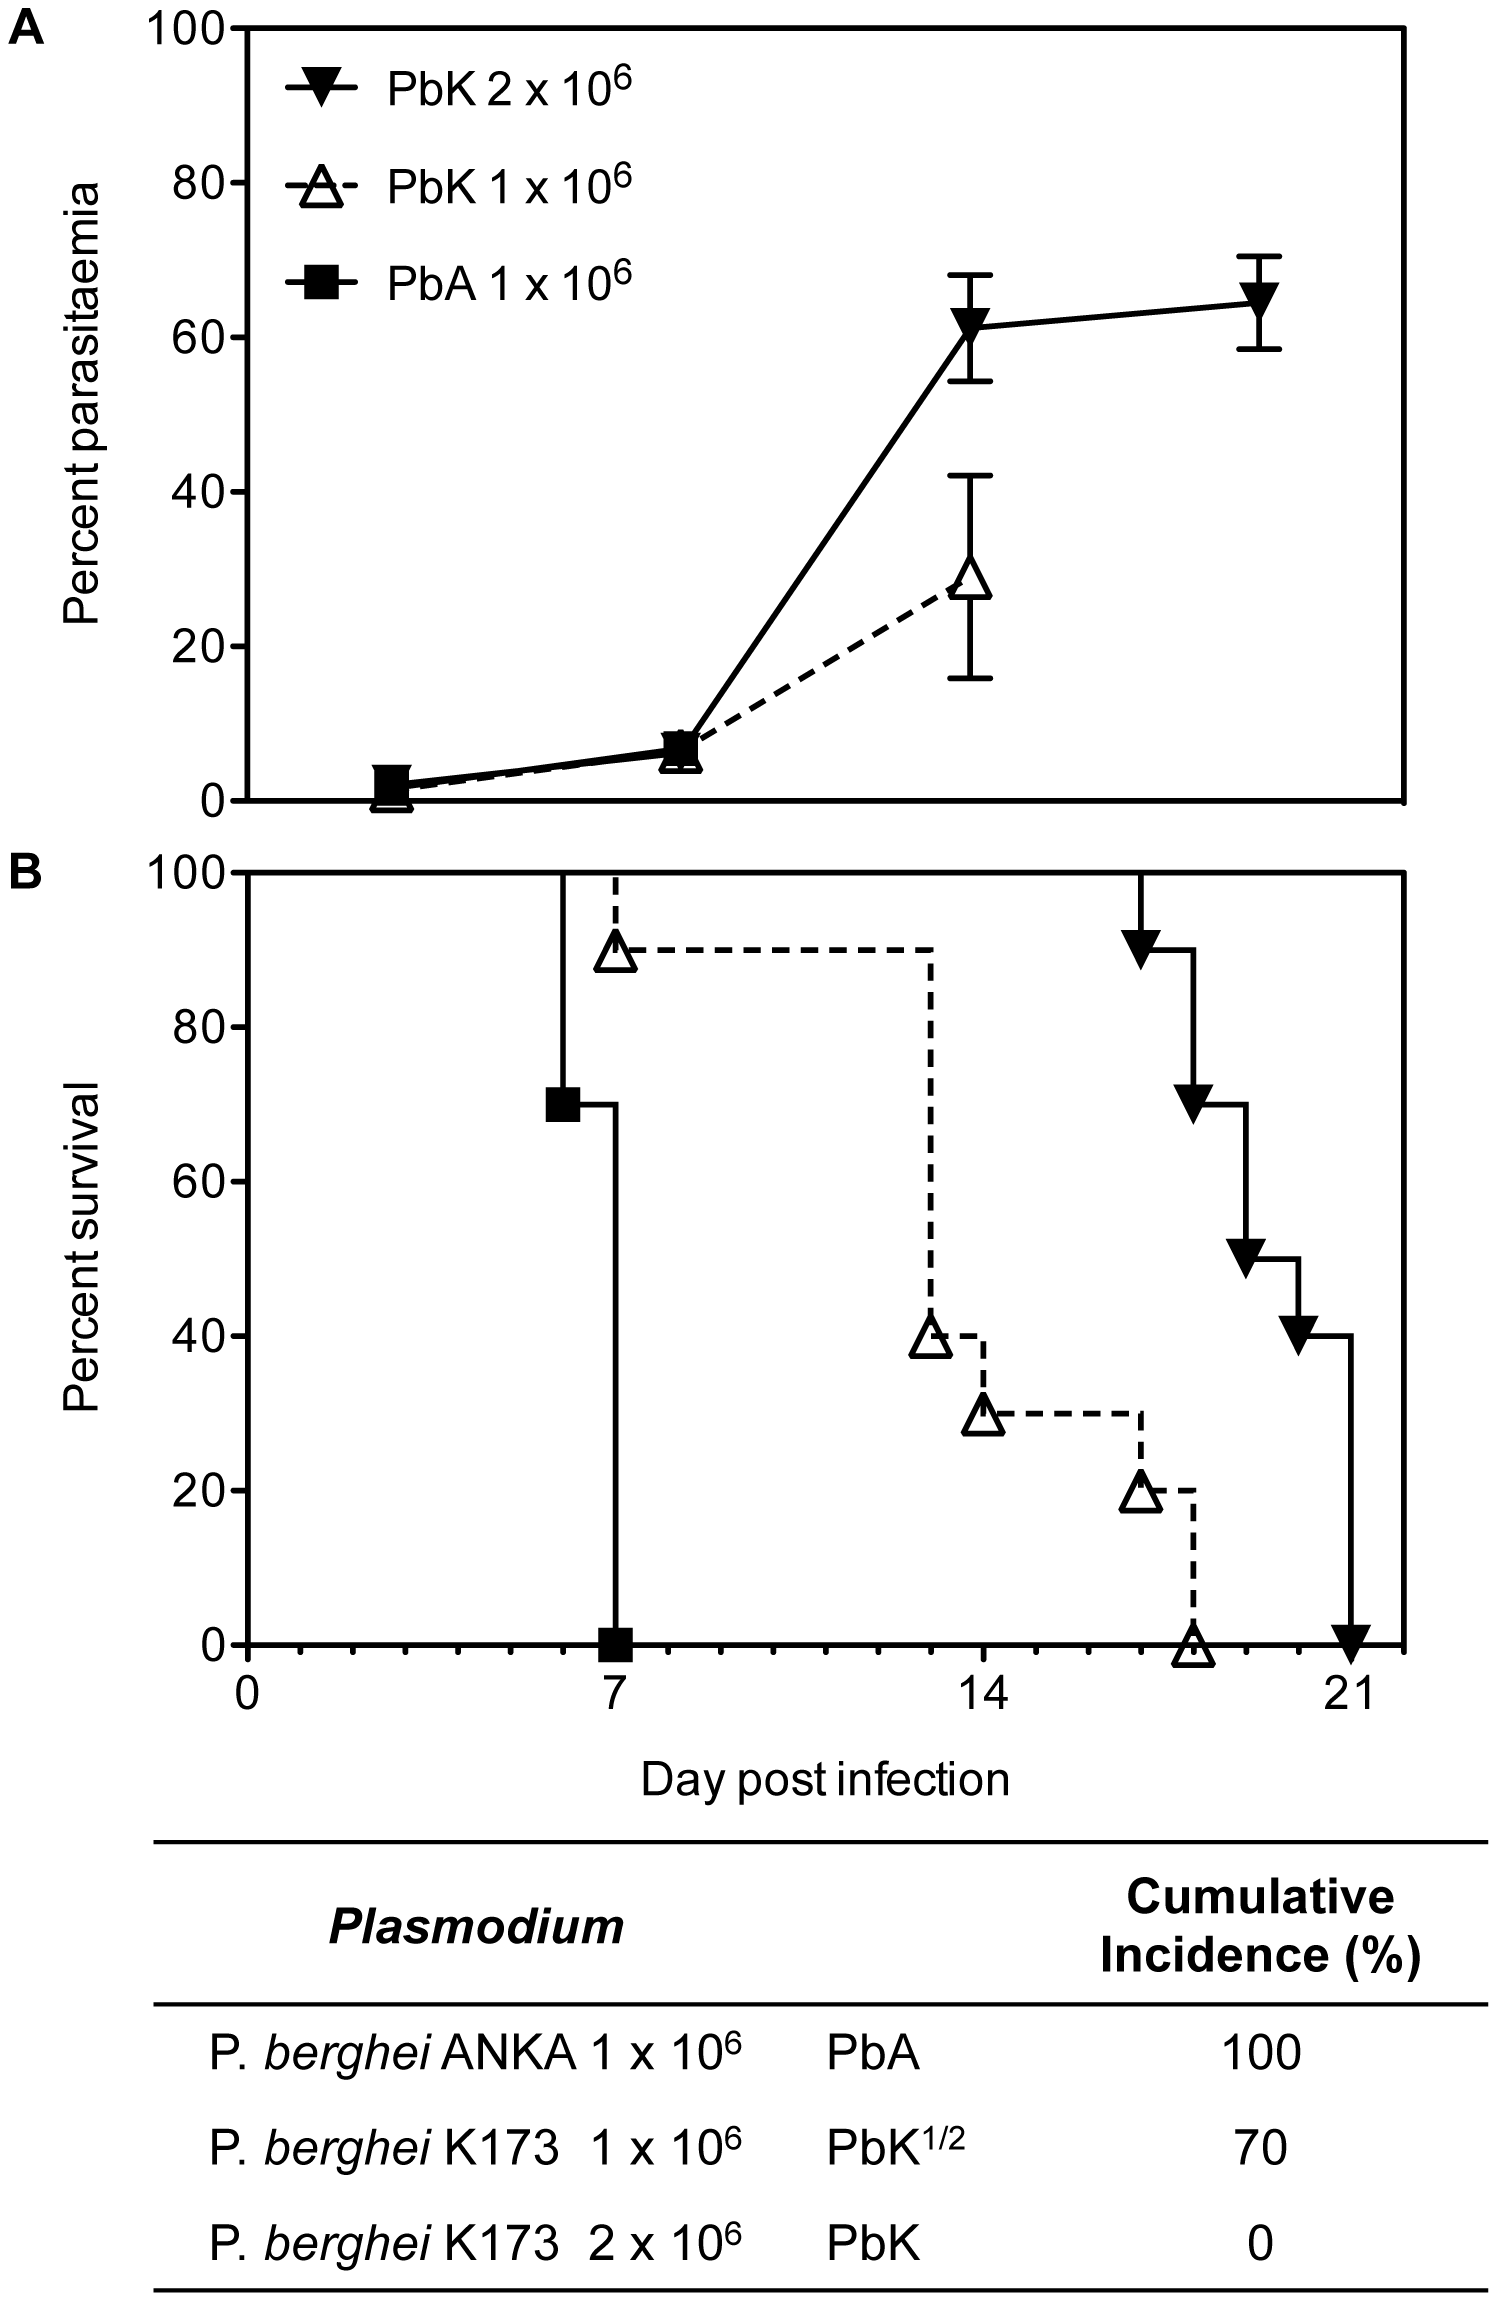 Parasitaemia and survival curves of <i>Plasmodium berghei</i>.